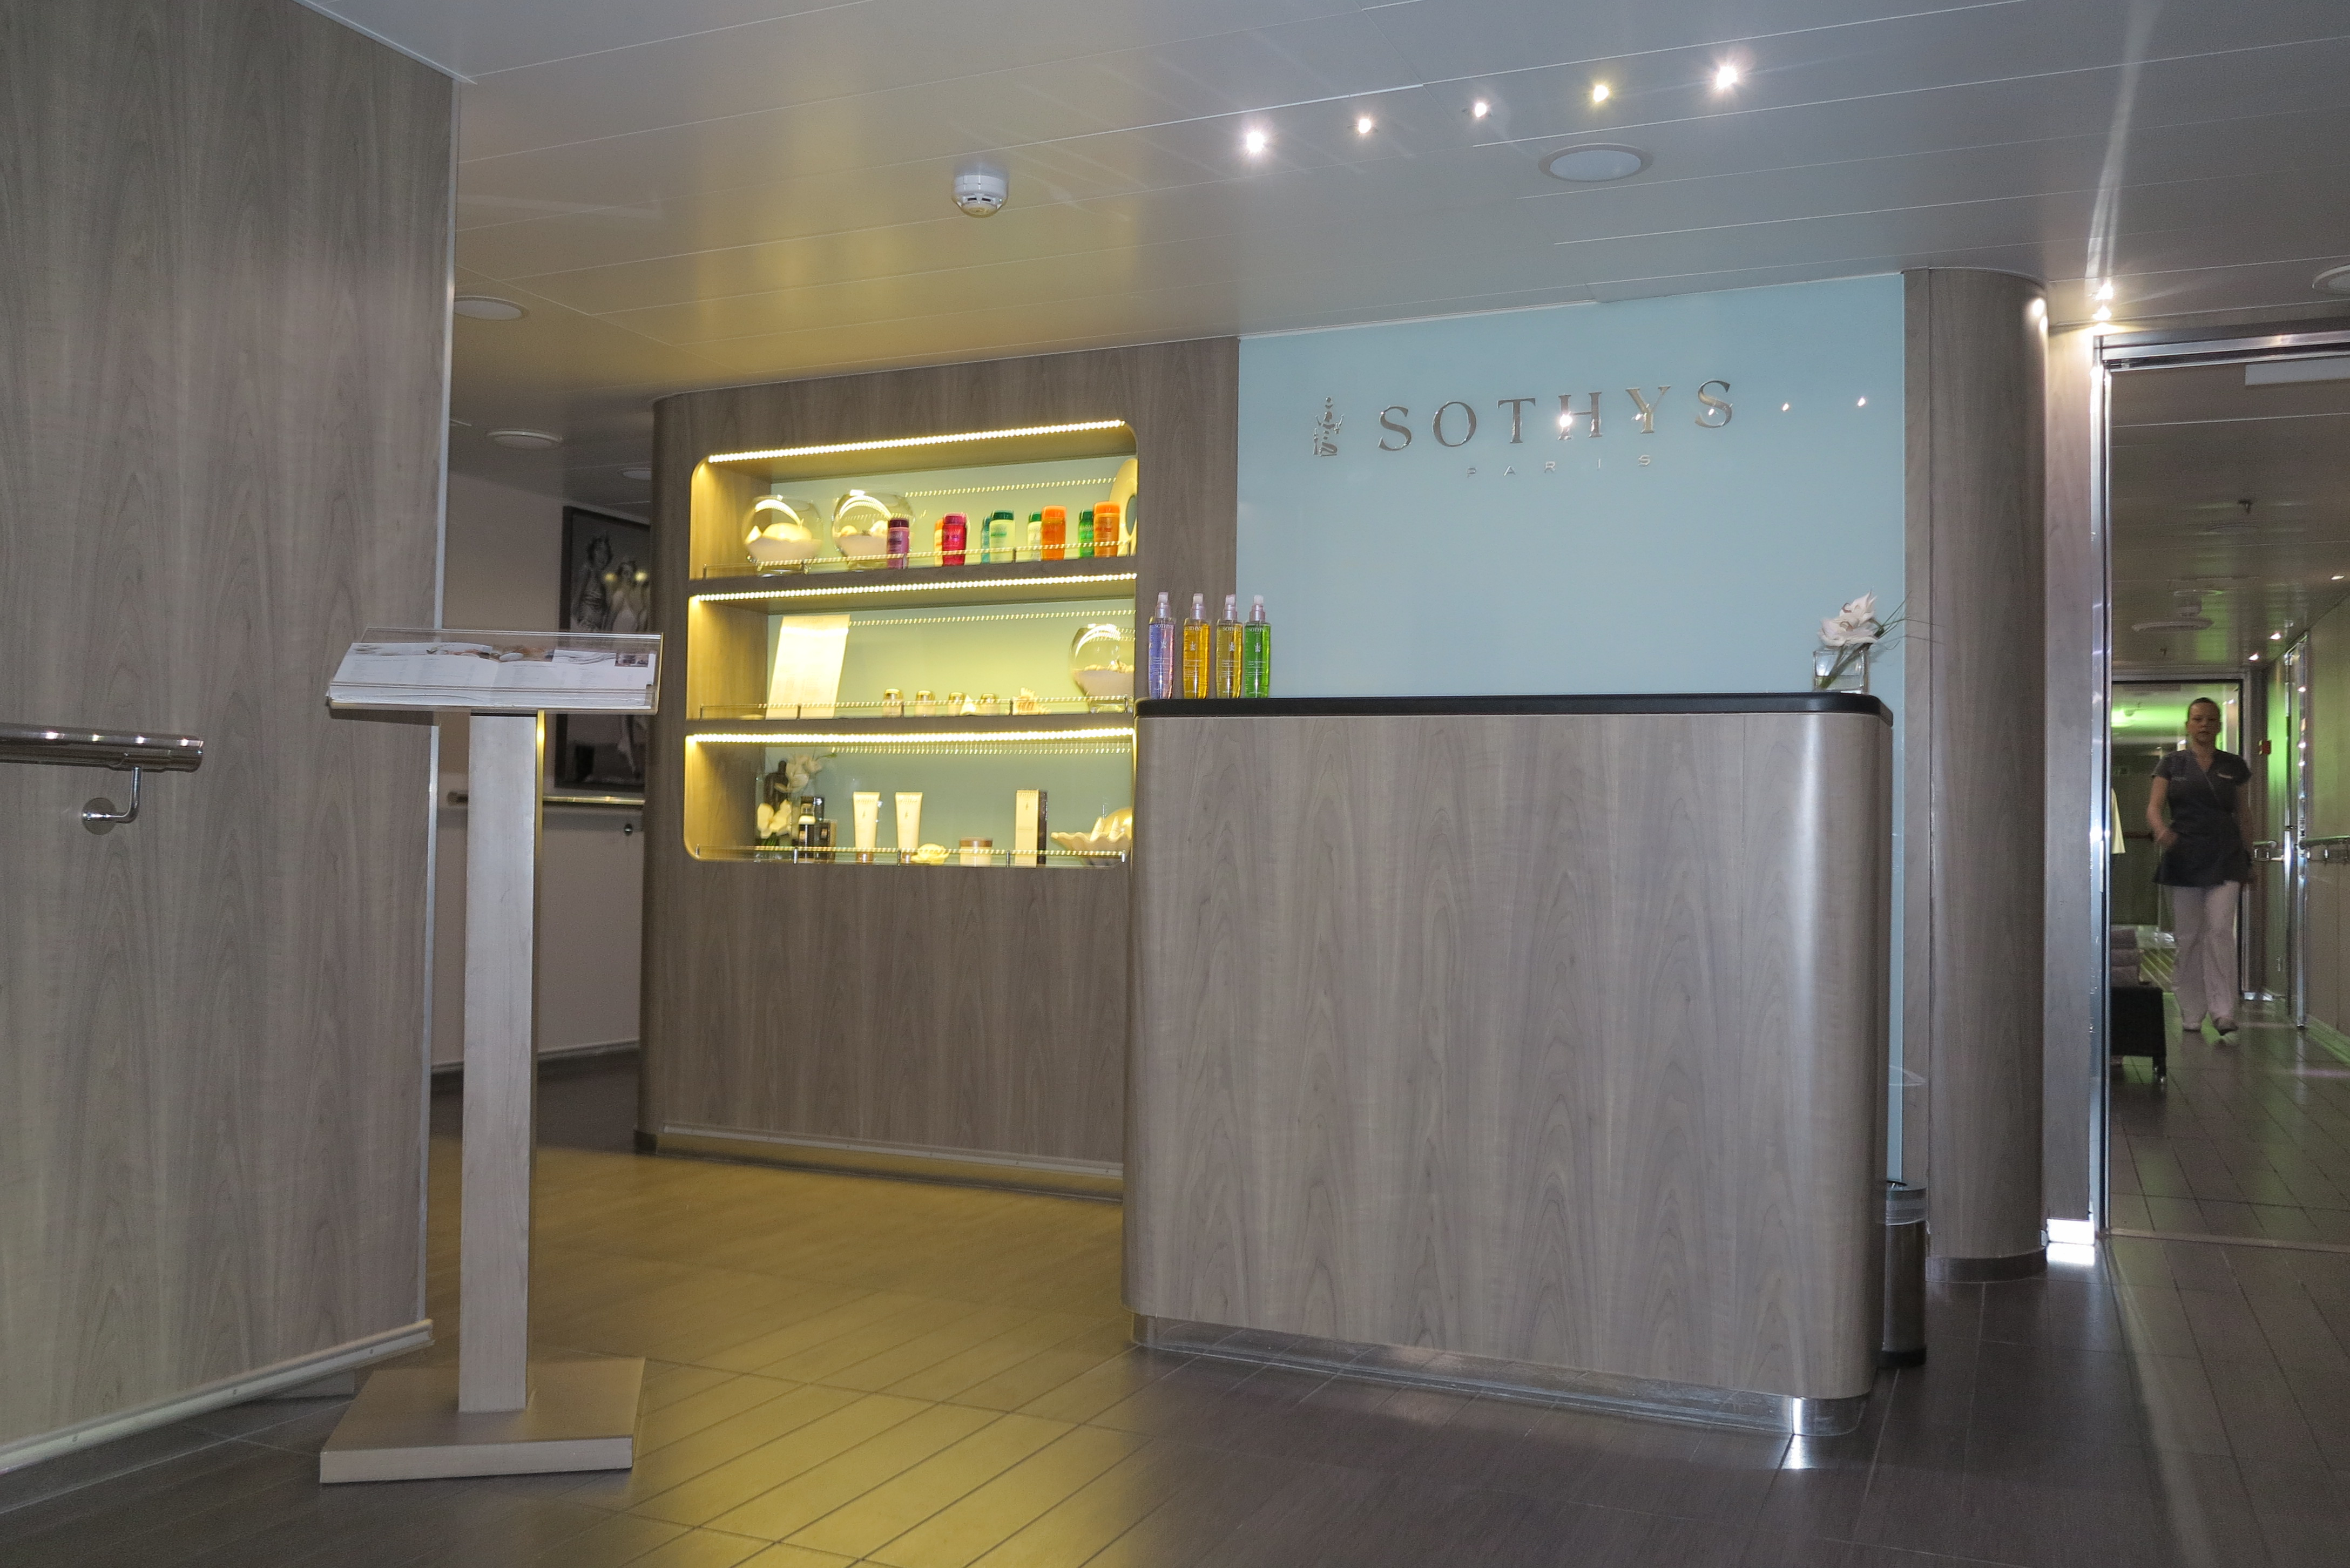 Time to be treated: The entrance to the spa